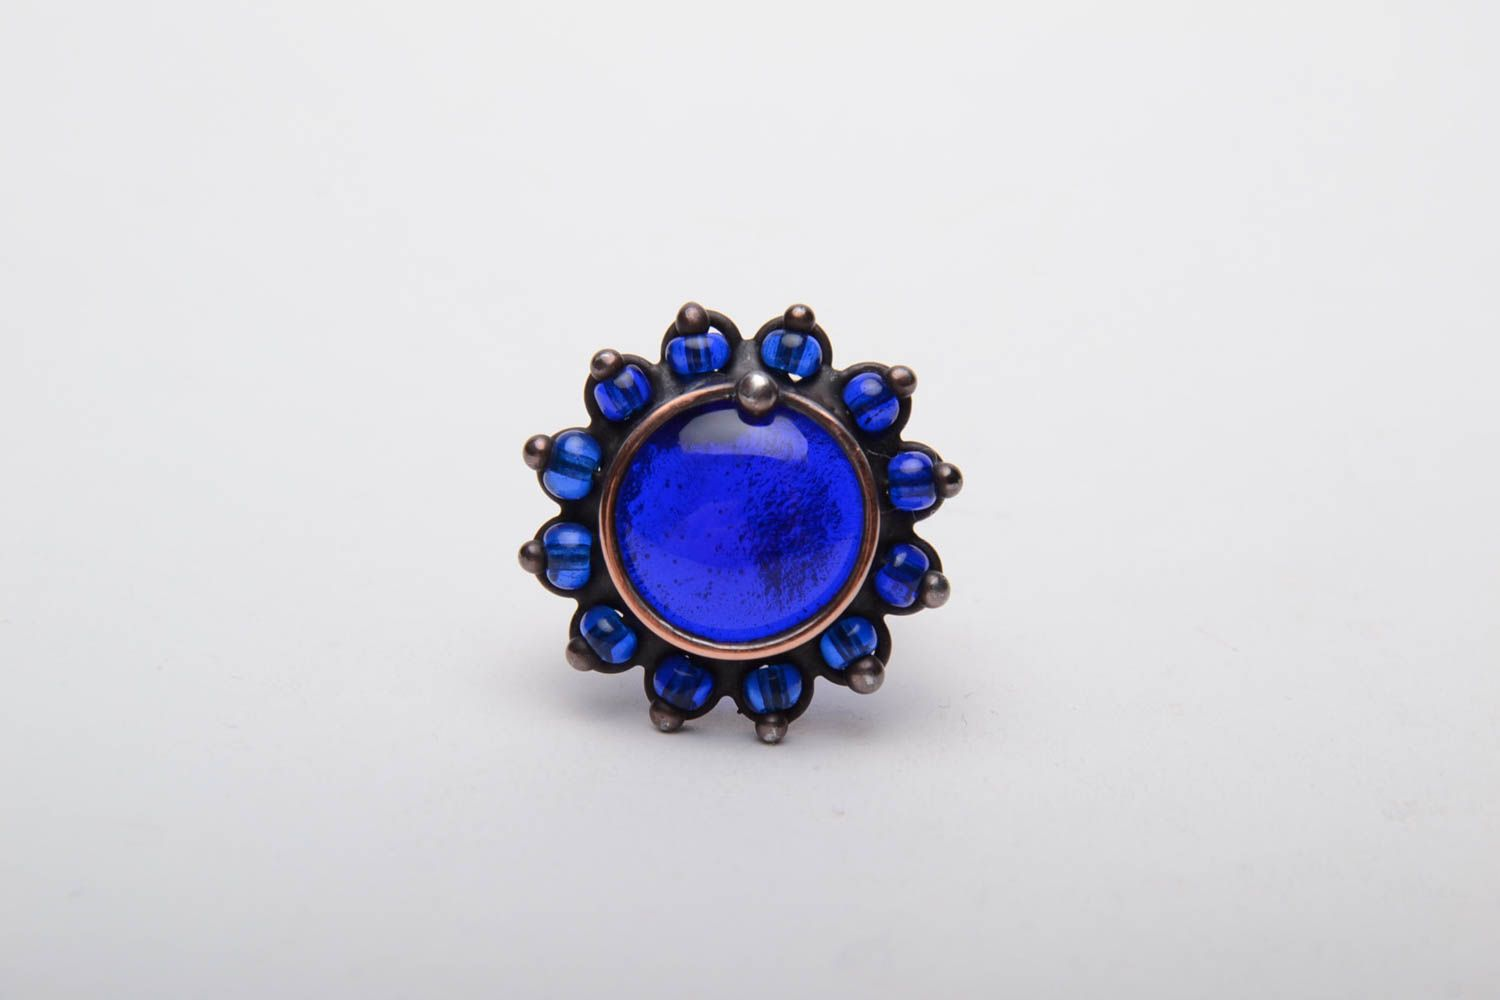 Round stained glass ring photo 2